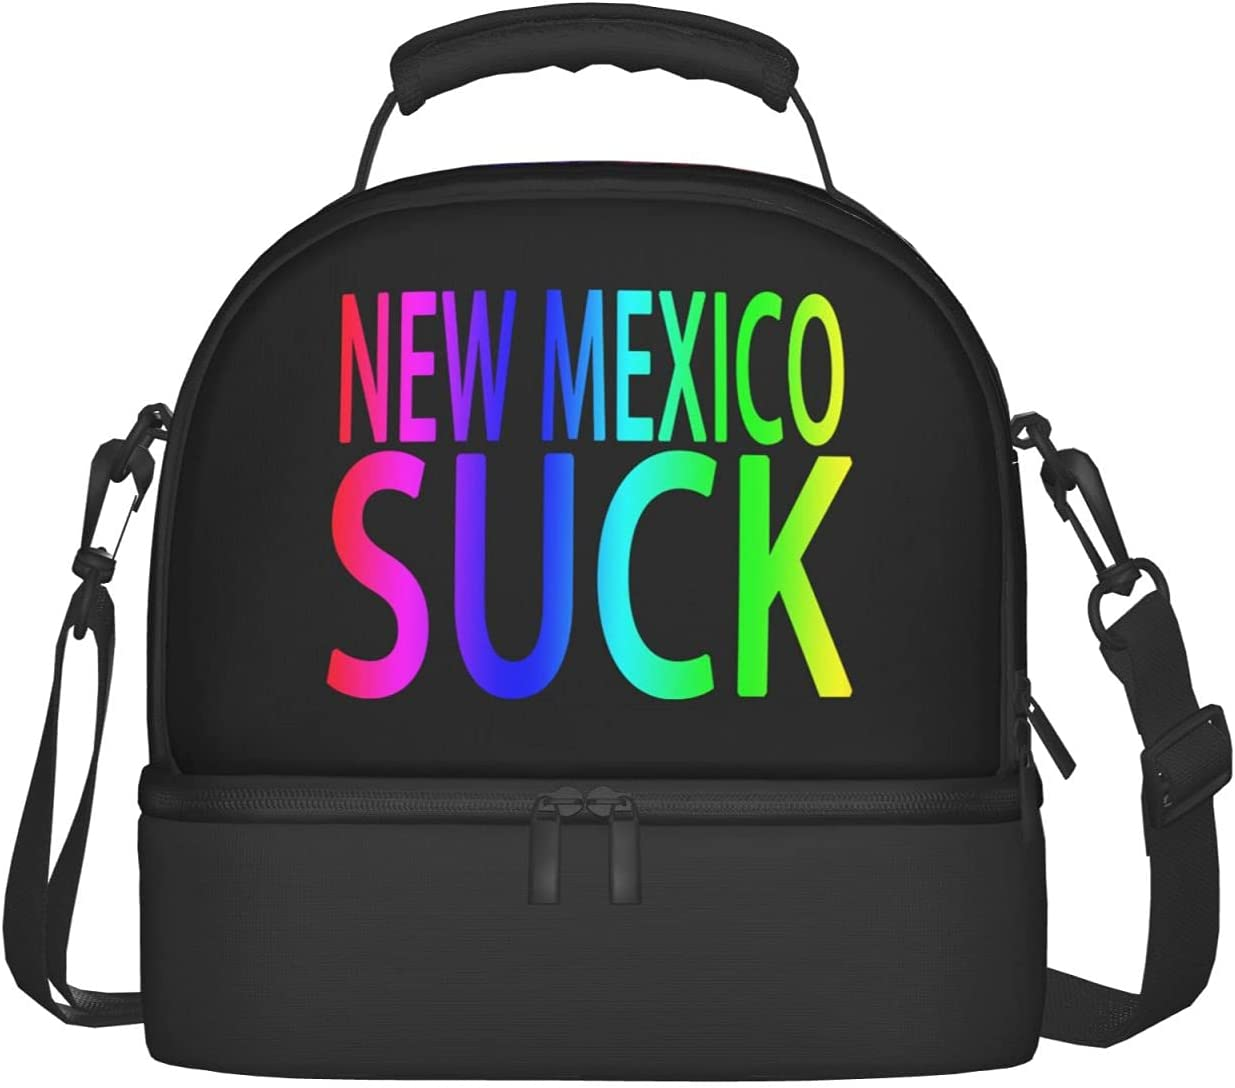 New Mexico Suck Lunch Bag Surprise price All stores are sold Storage Strap Shoulder Adjustable Cold